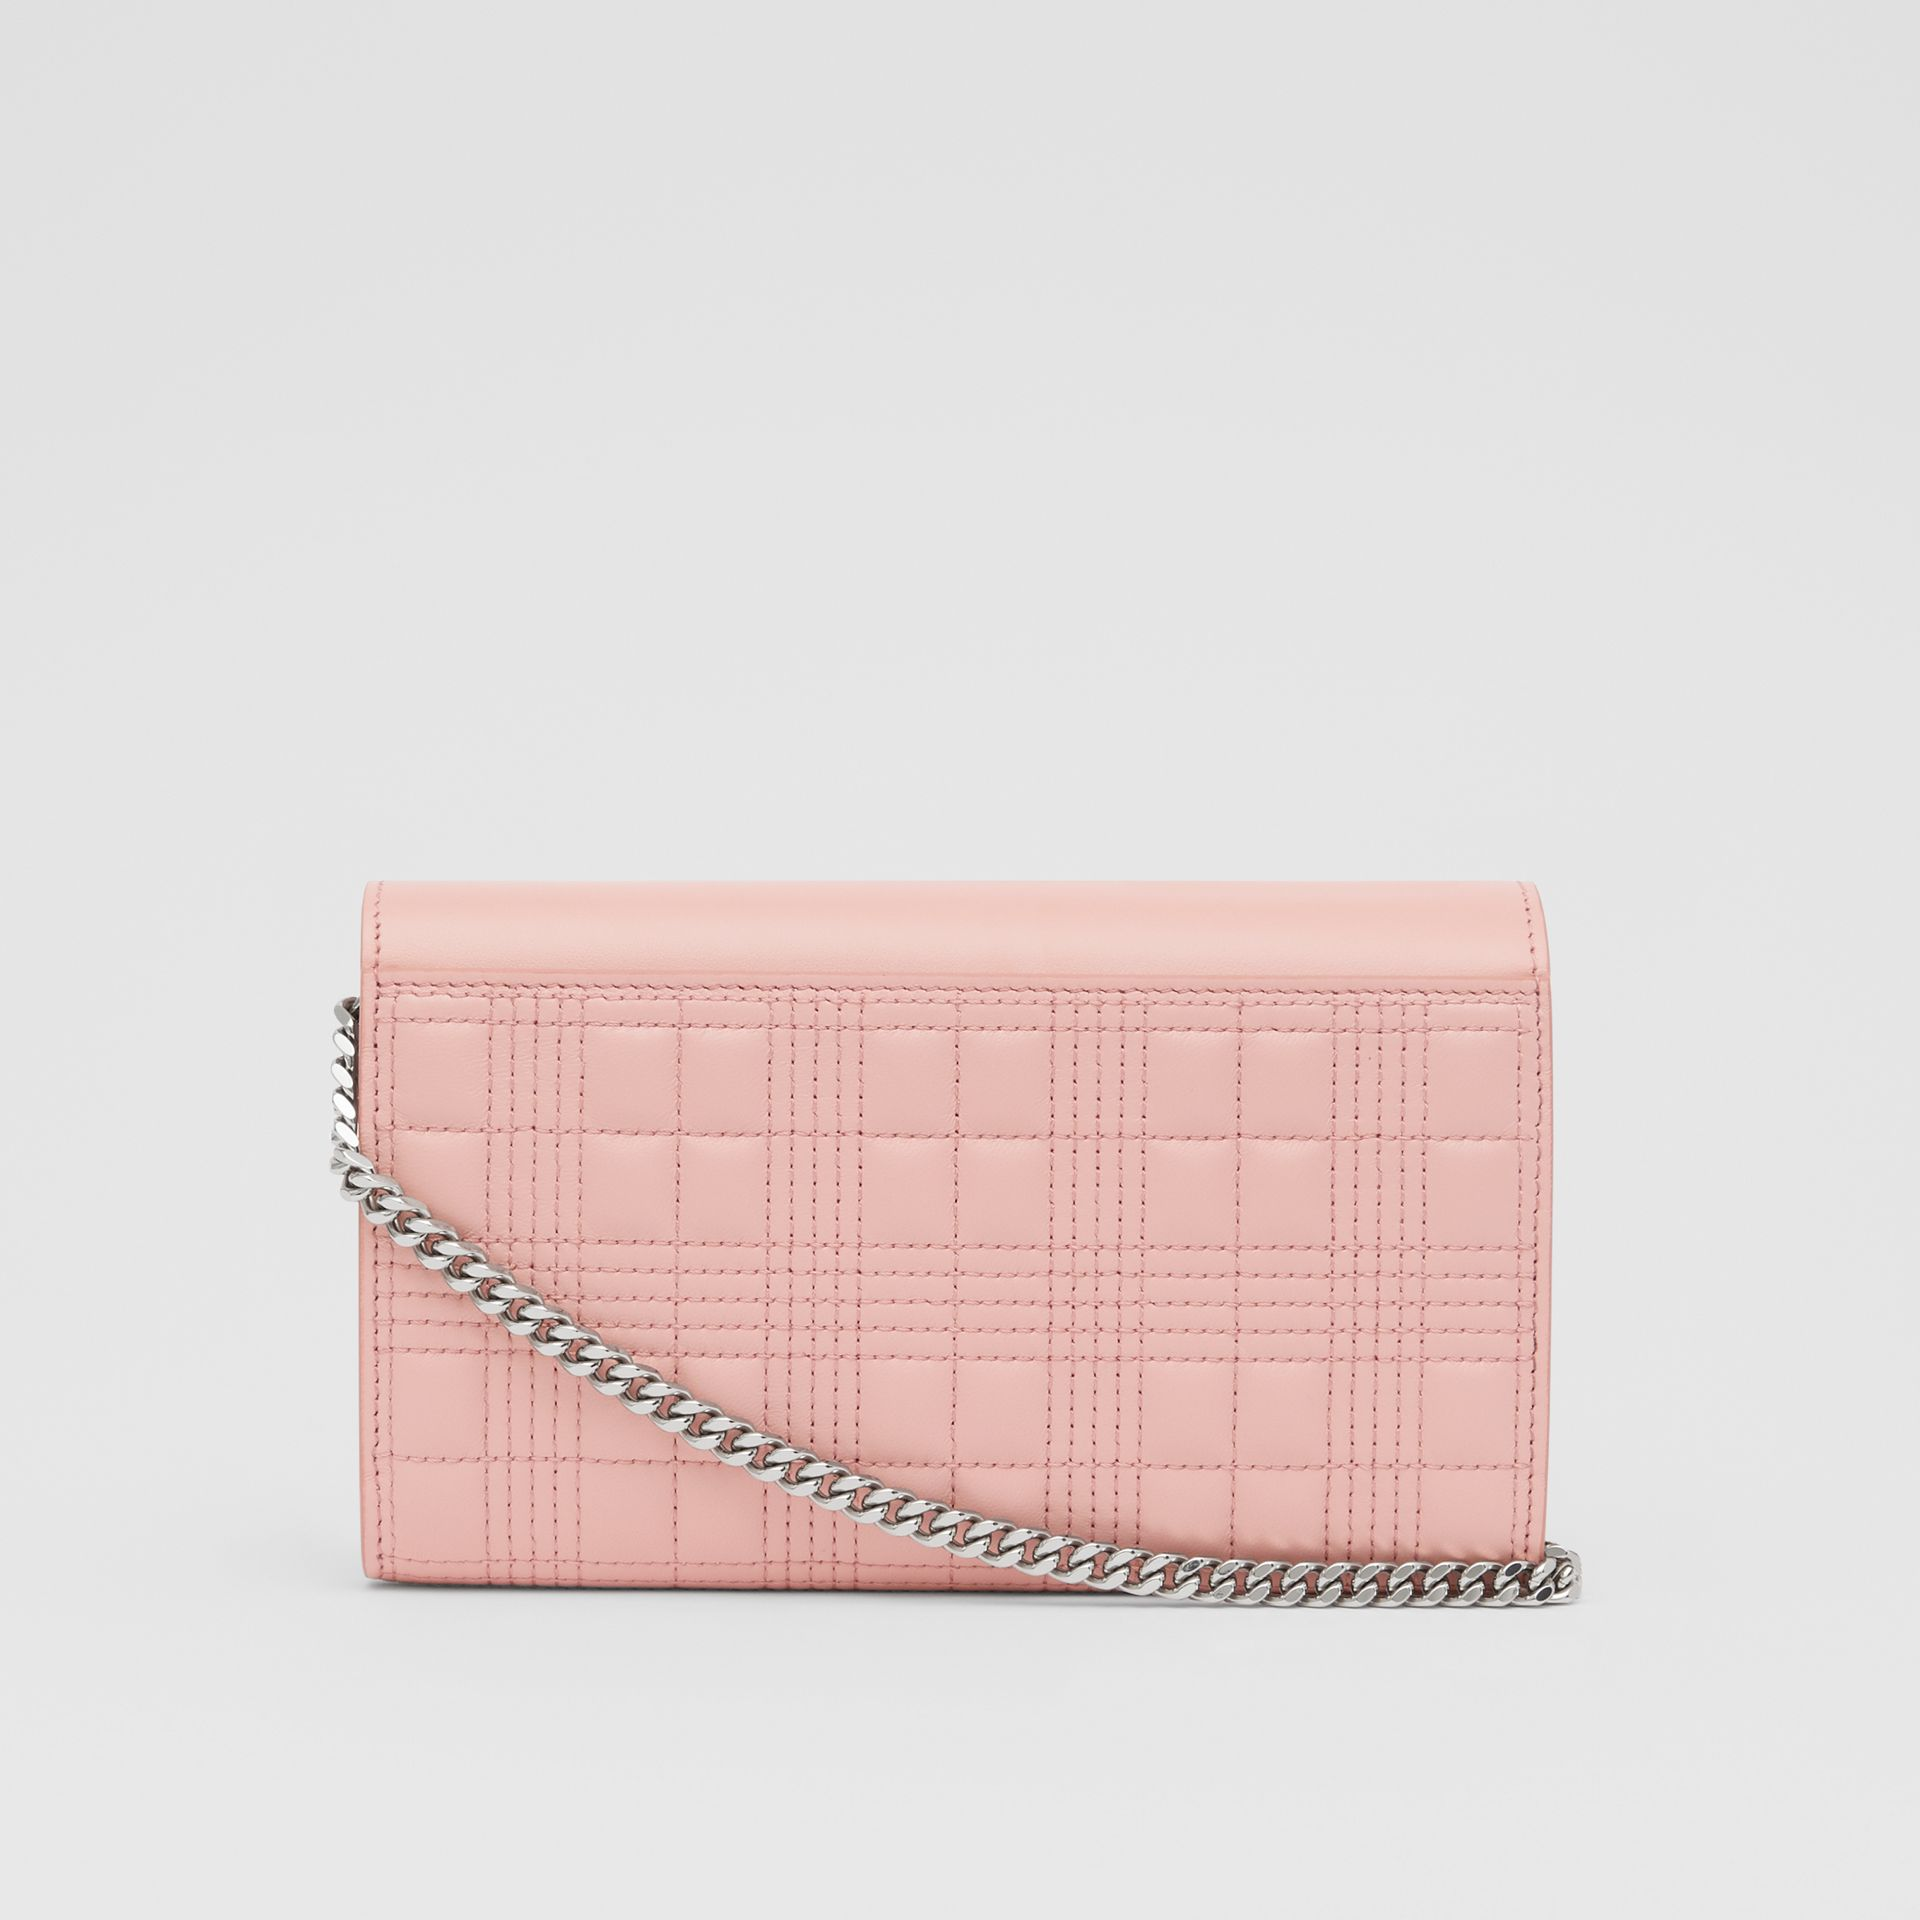 Quilted Lambskin Wallet with Detachable Chain Strap in Blush Pink - Women | Burberry - gallery image 7